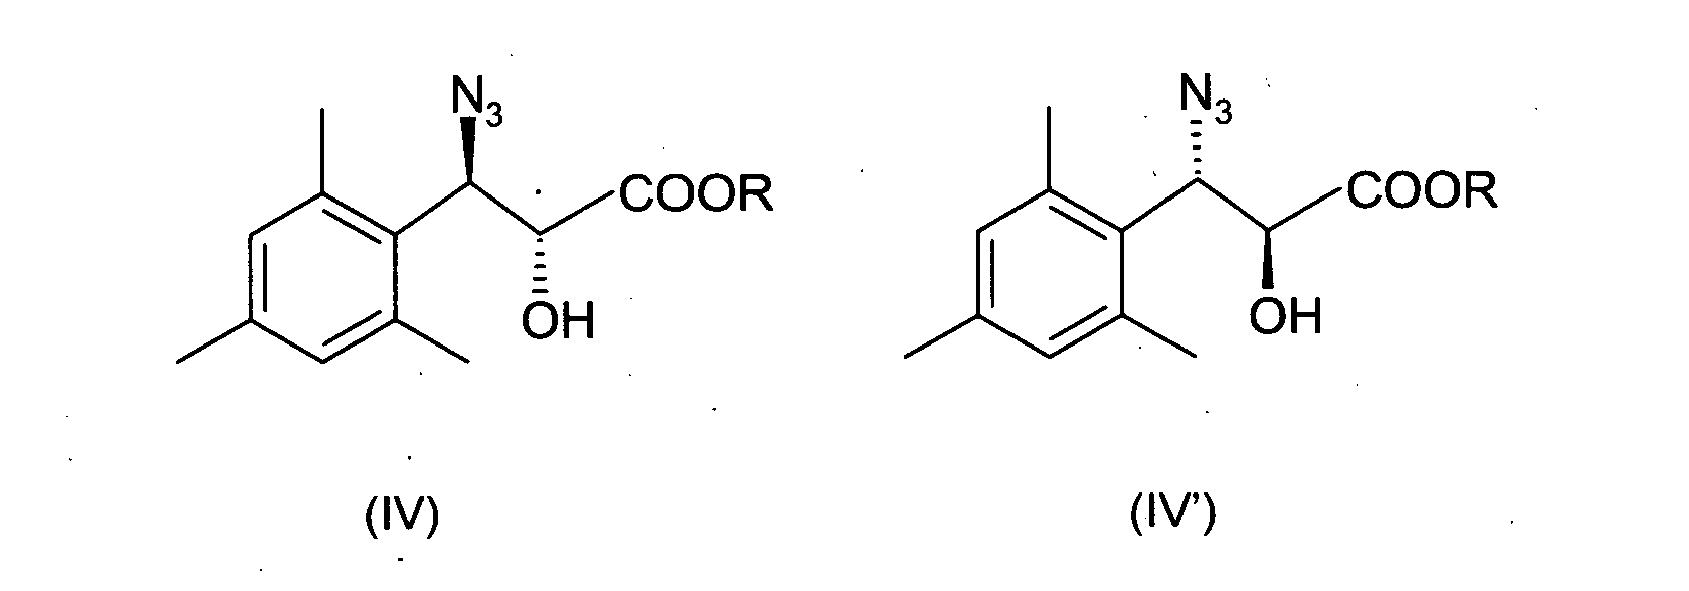 EP2213653A2 - Method for the stereoselective preparation of